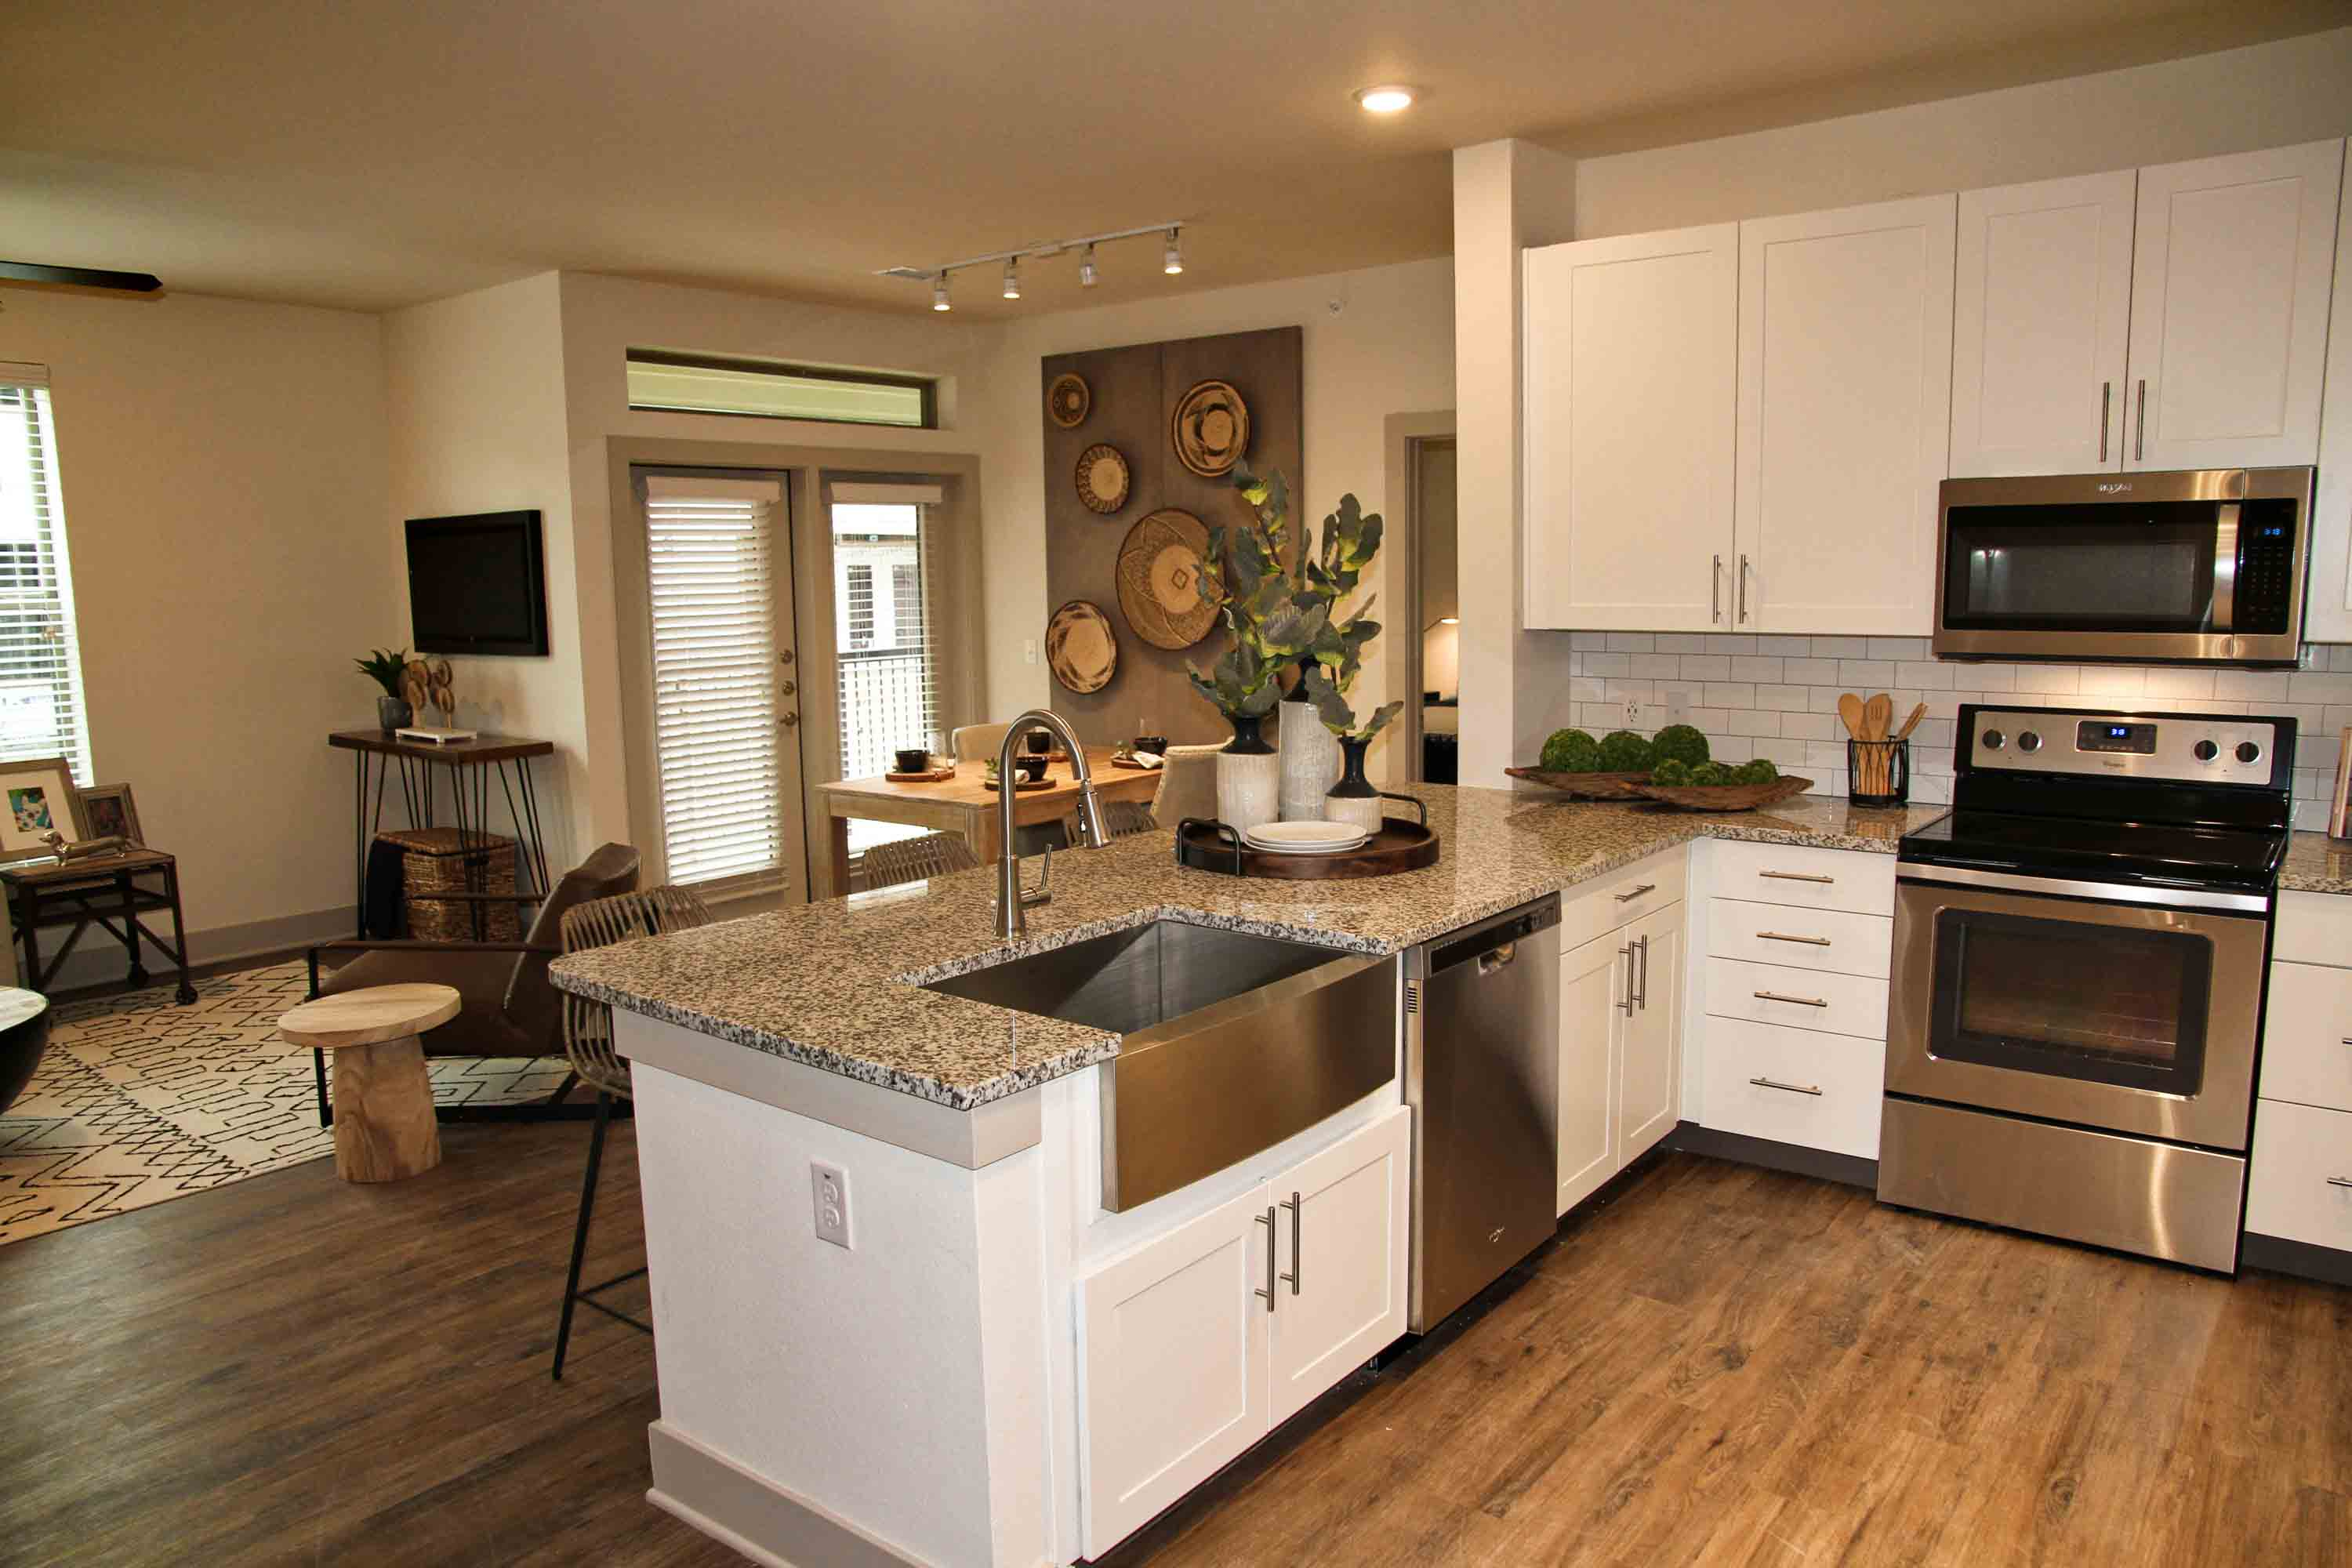 Kitchen and living area with hardwood style floors, granite countertops, and large glass balcony doors with natural light.